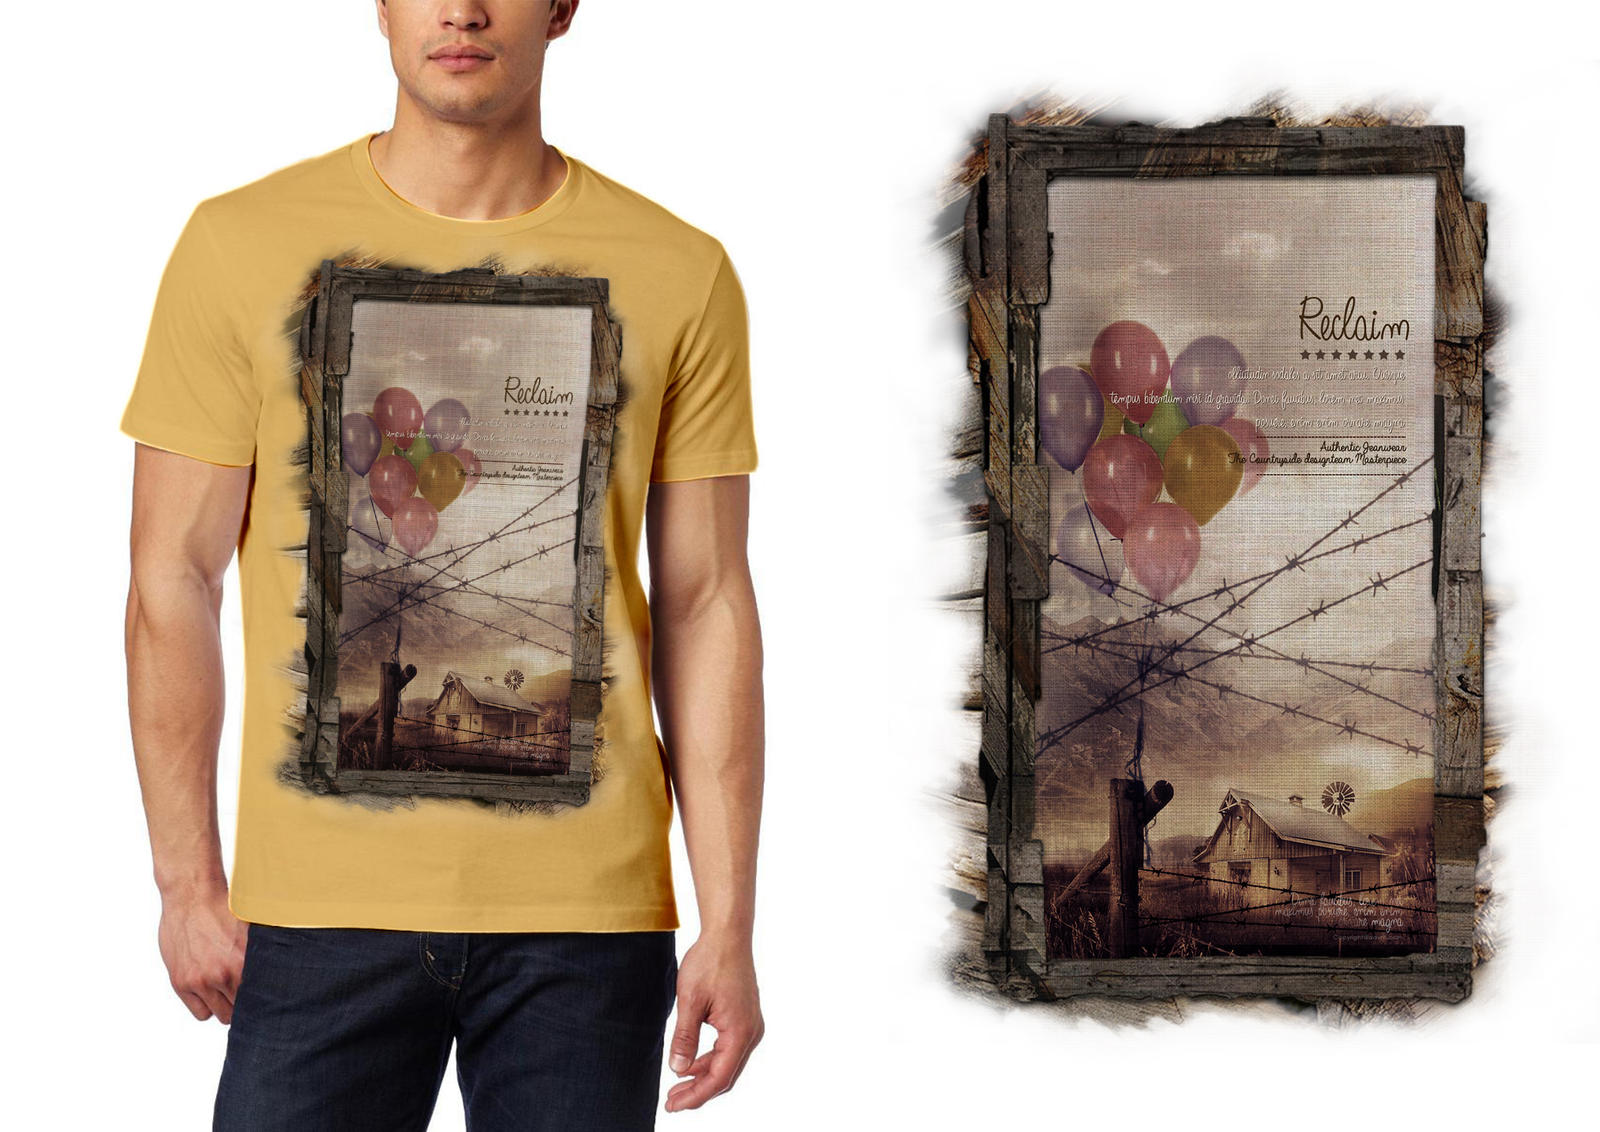 Create a T-shirt design and prepare it for print